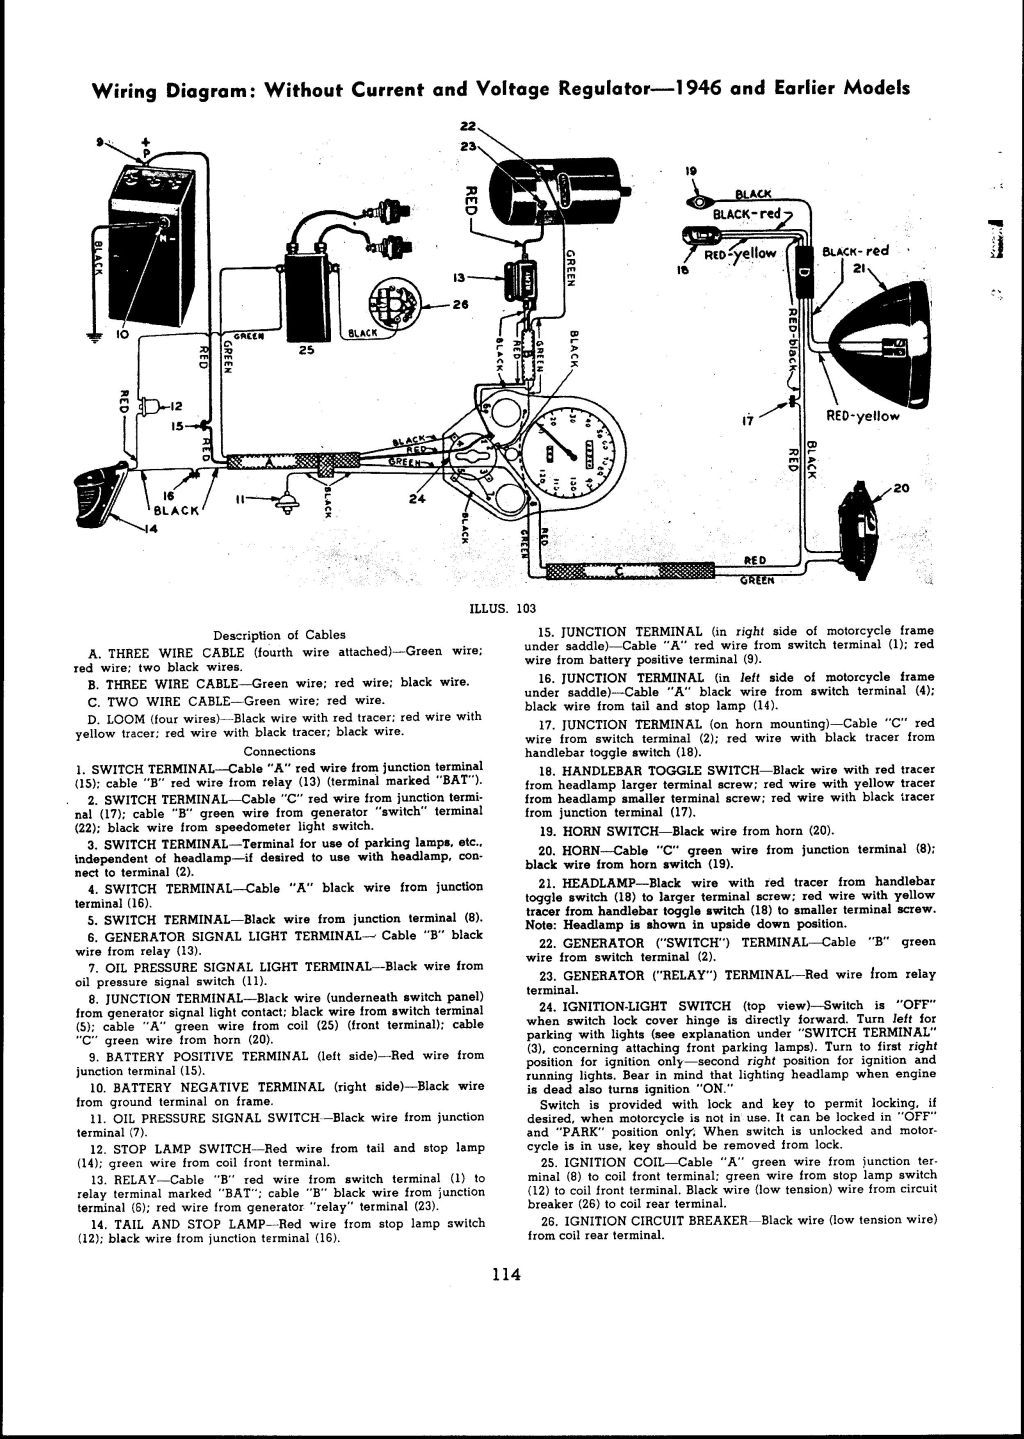 1946 and earlier models Wiring diagram: With current and ... Harley Dyna Voltage Regulator Wiring Diagram on